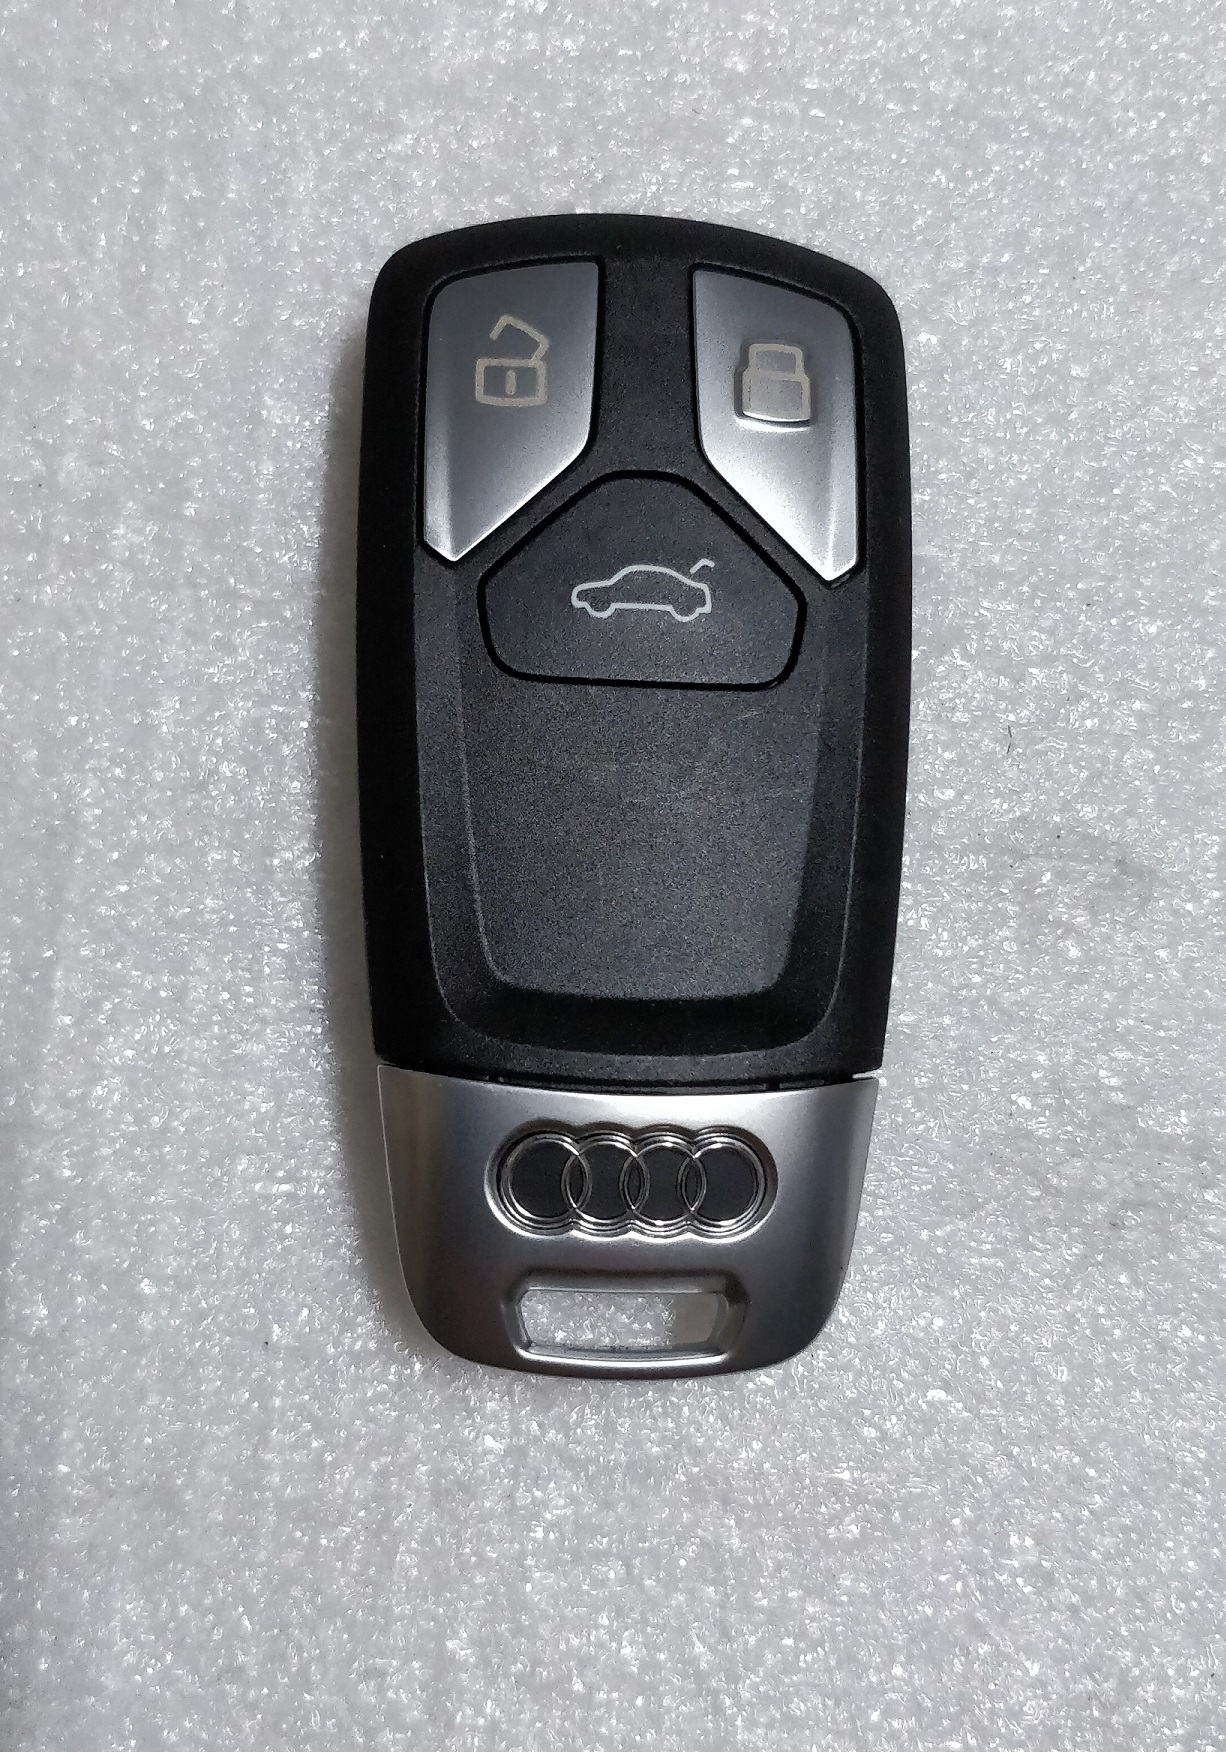 AUDI SMART KEY S-LINE 4M0959754 TTS TT SQ7 Q7 Remote